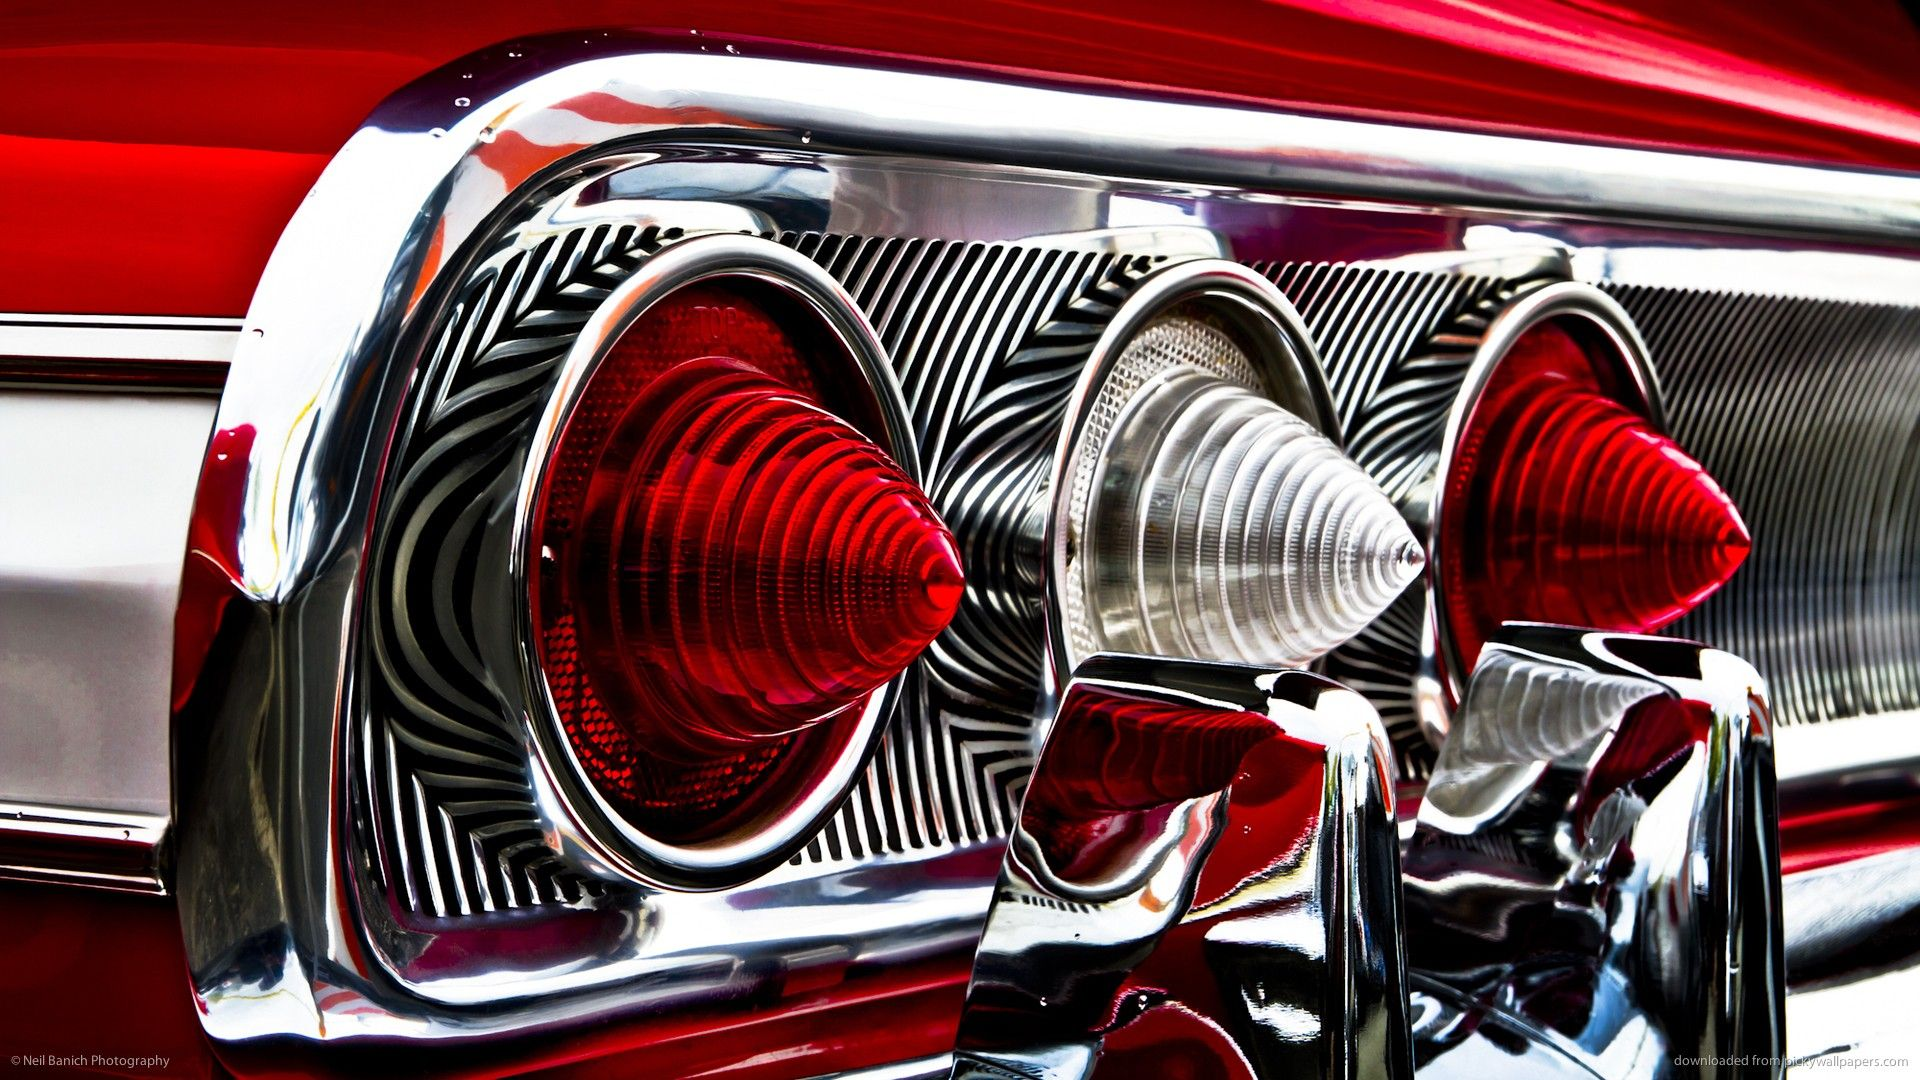 Classic Car Classic Hot Rod Tail Light Red Chevrolet Chevy Impala Reflection Chrome Wallpaper 1920x1080 58249 Impala Chevrolet Impala Tail Light Retro vintage red car headlight hd